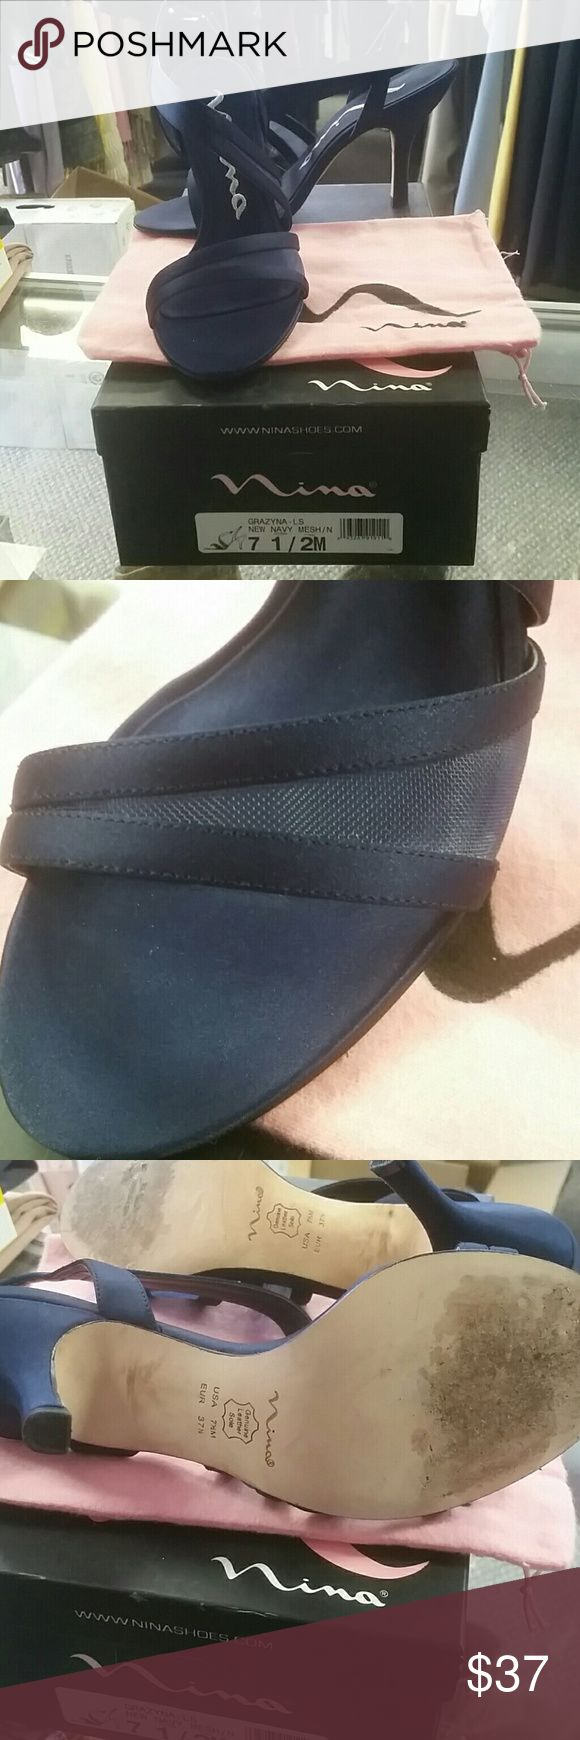 Nina shoes Navy blue Nina slingback heels. Front has small mesh piece that adds interest. Worn twice, but still in fantastic condition. Nina Shoes Heels